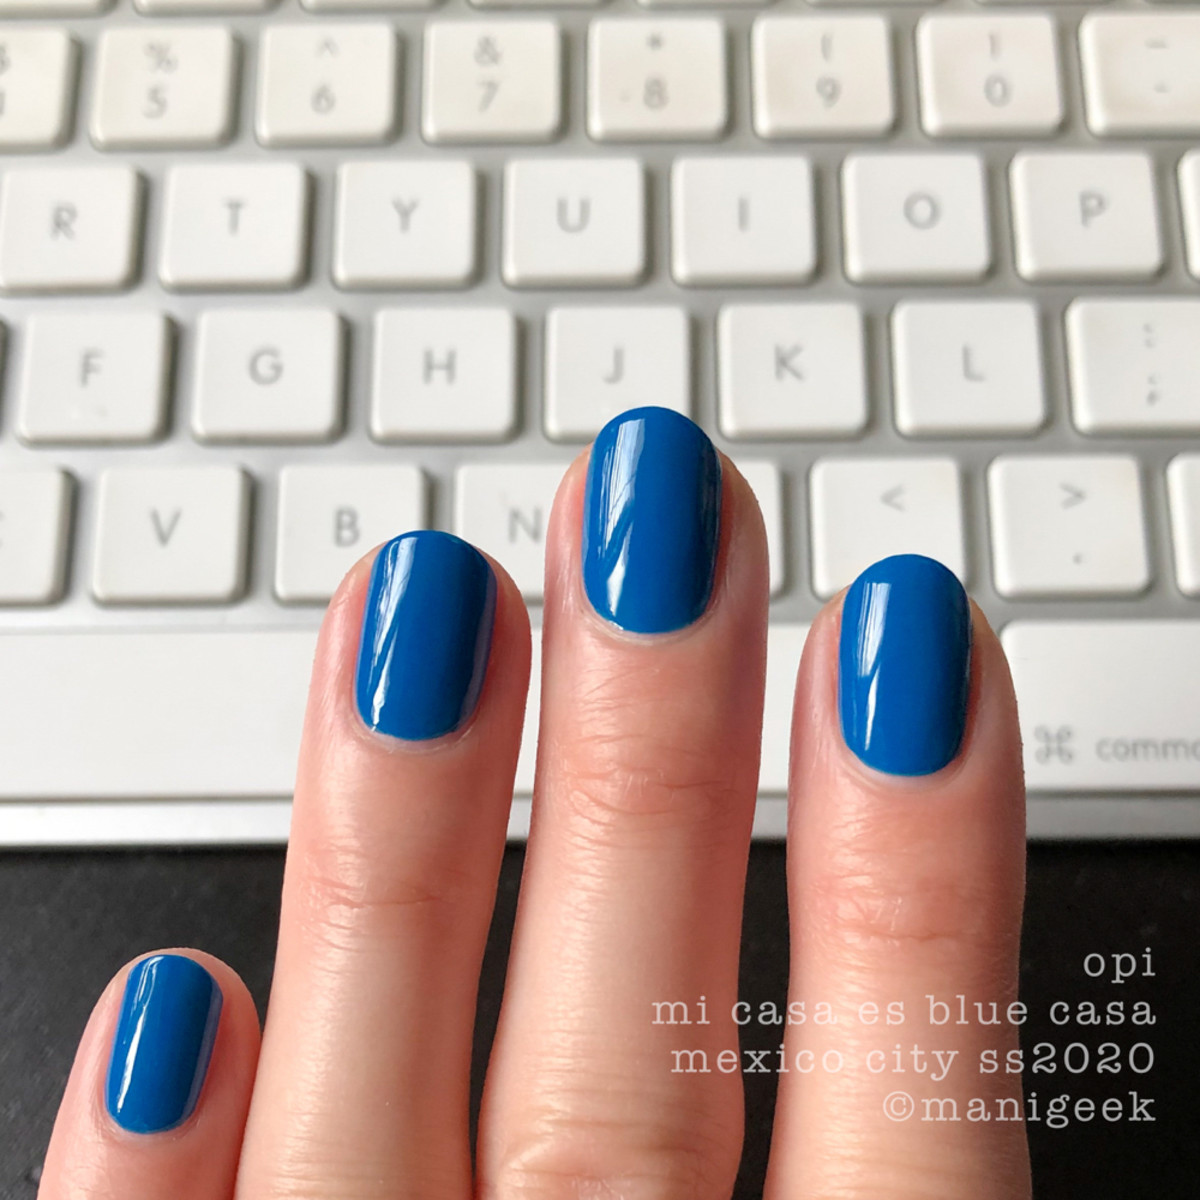 OPI Mi Casa Es Blue Casa - OPI Mexico City Swatches Review 2020